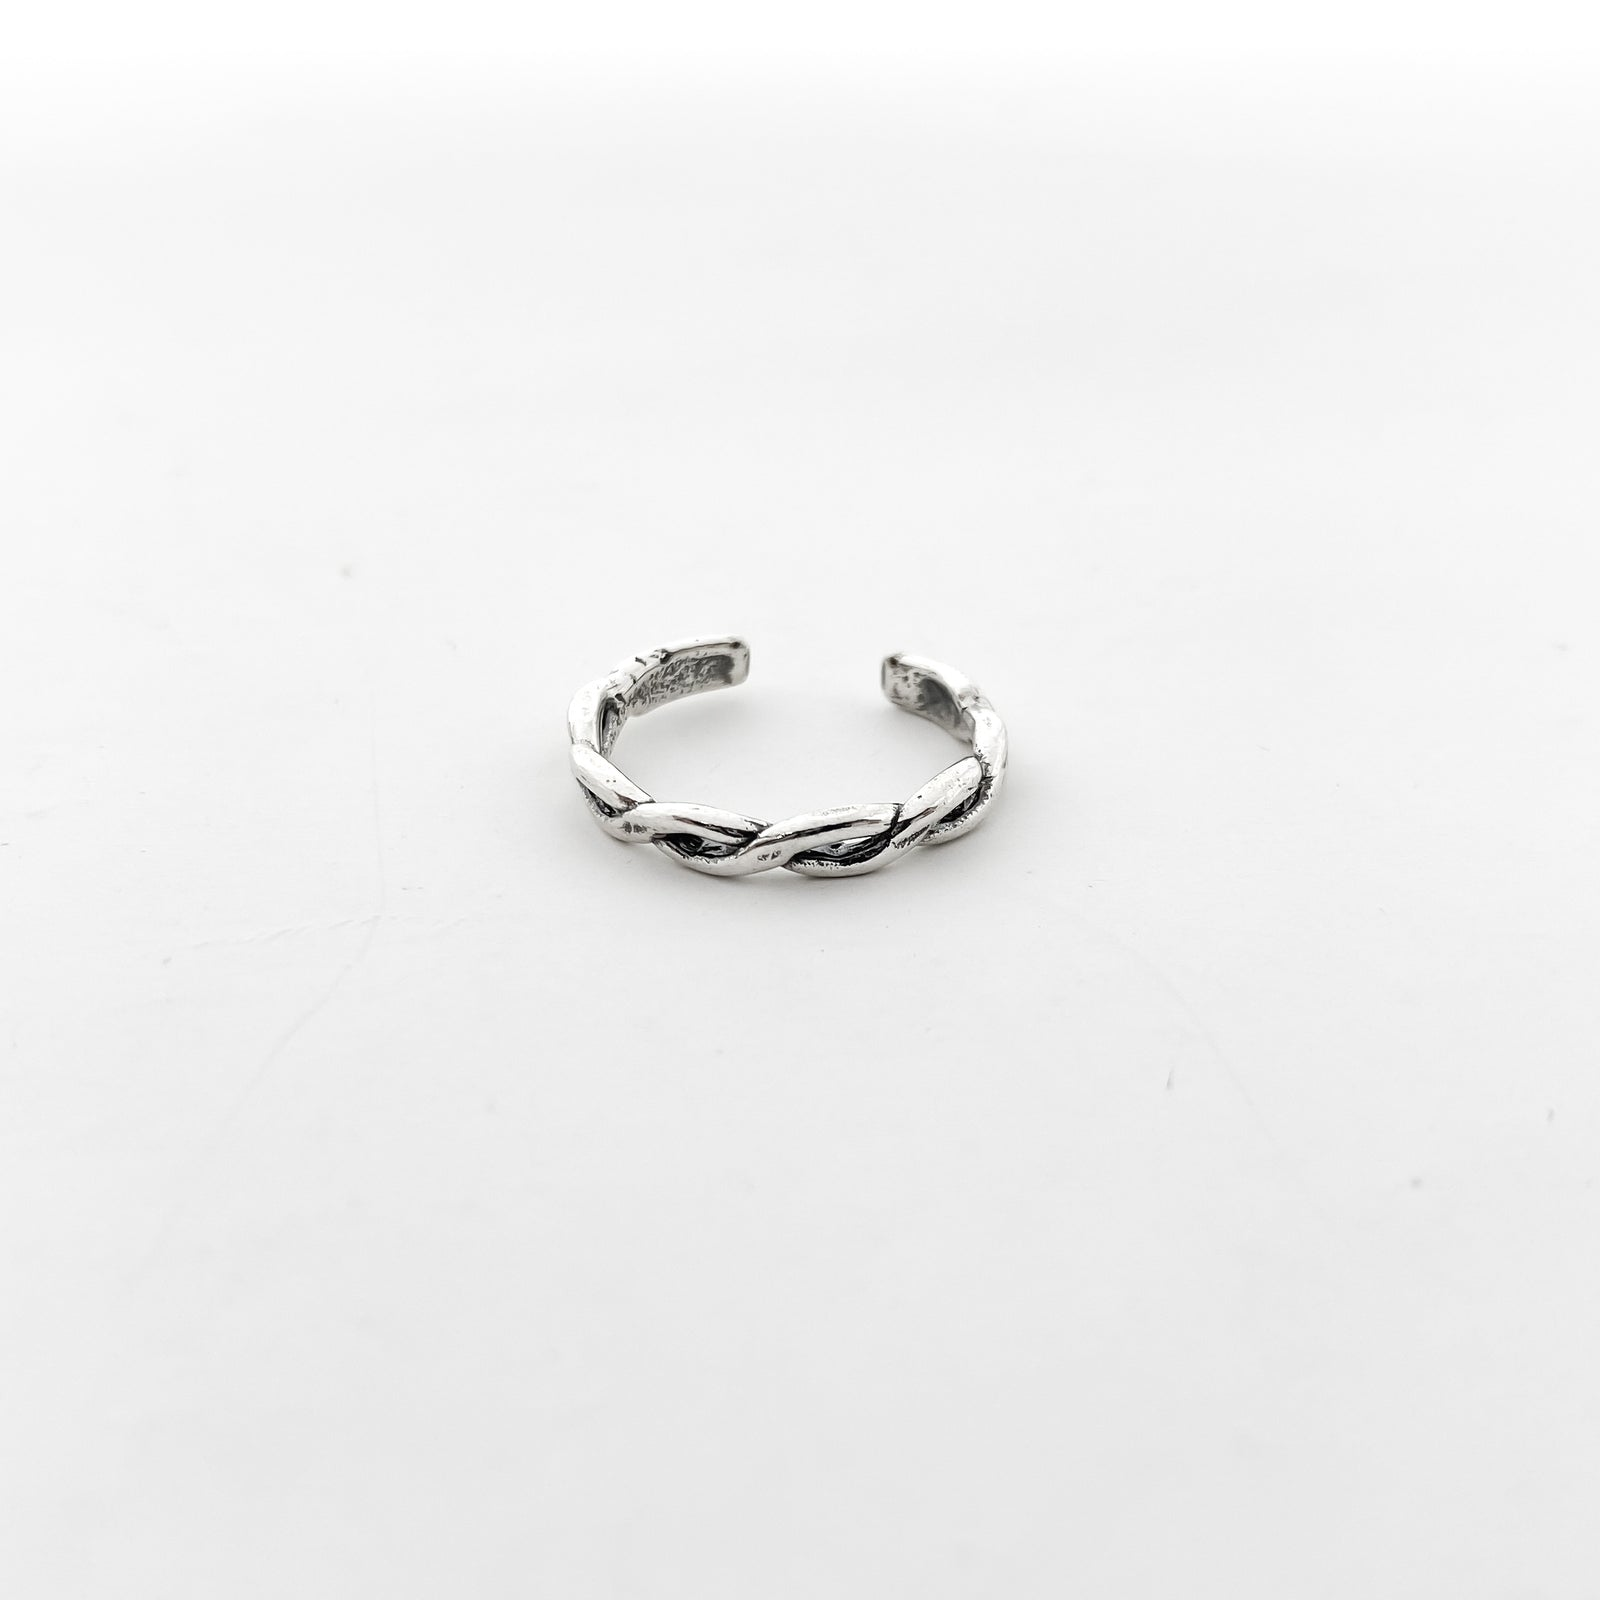 MODERN TWIST BRAID TOE RING | STERLING SILVER | SIZE OPTIONS